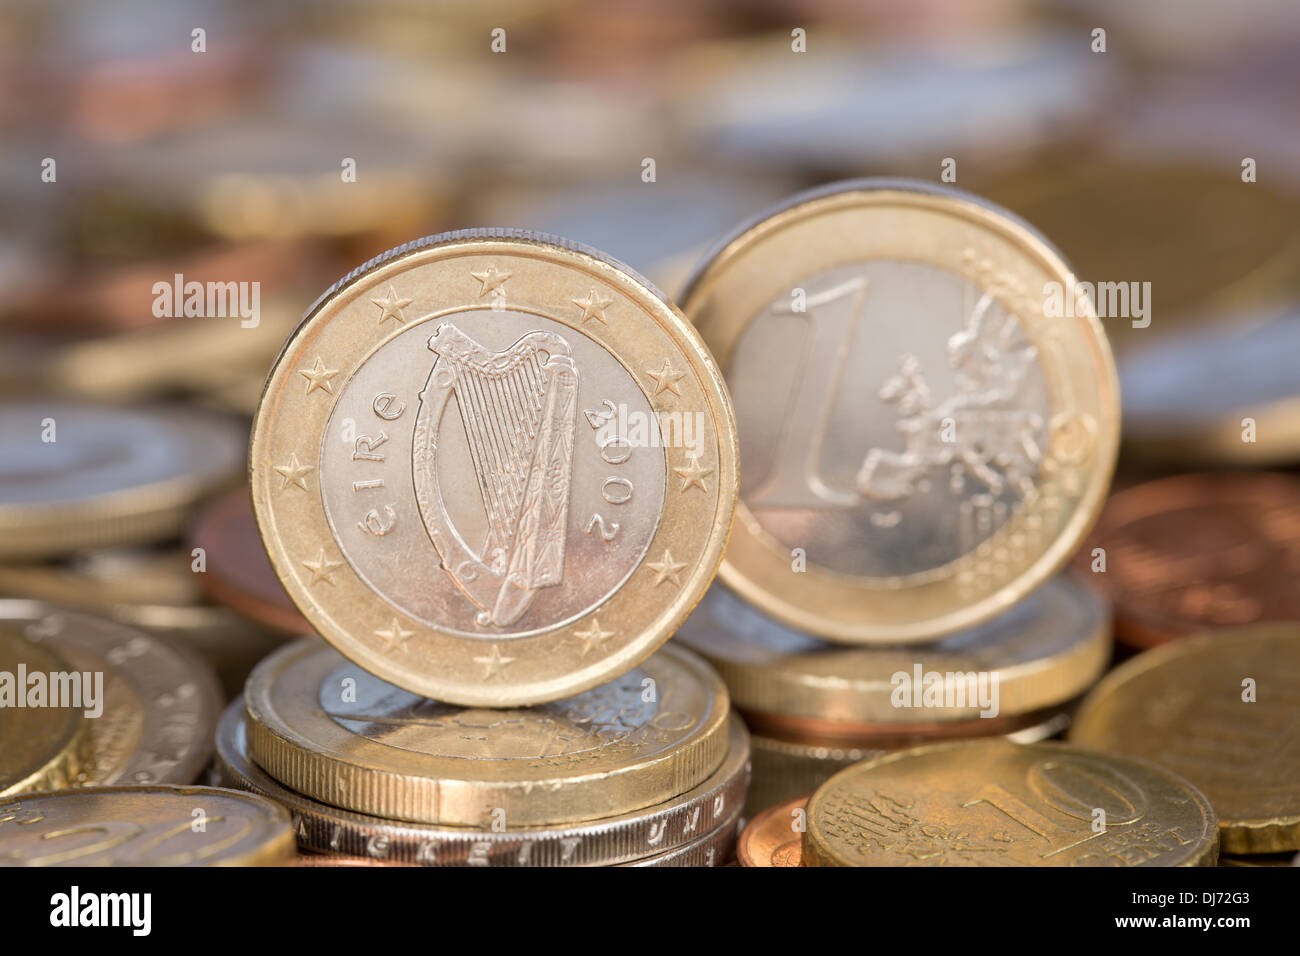 A one Euro coin from the EU member country Ireland - Stock Image